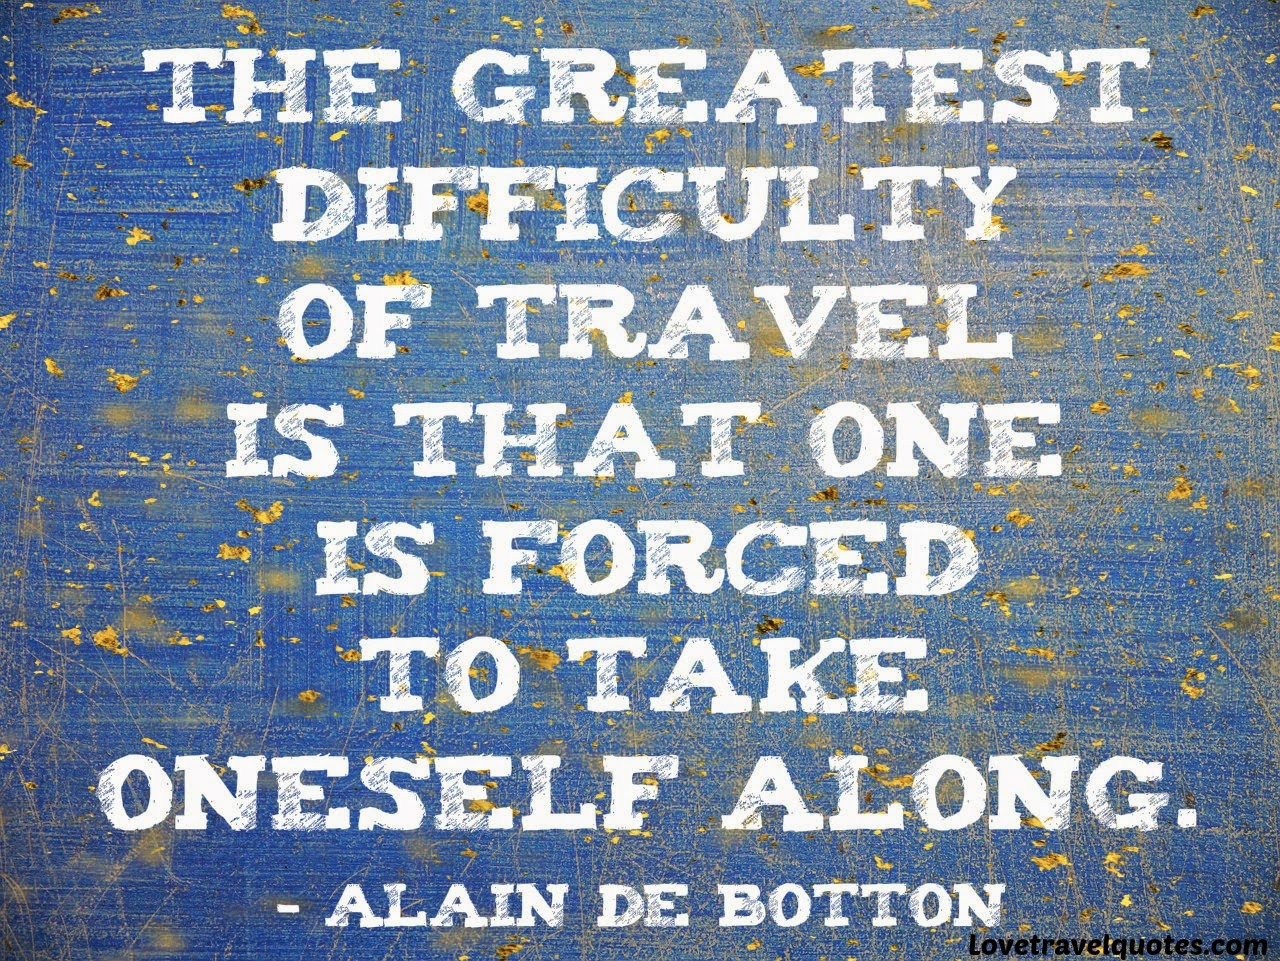 The greatest difficulty of travel is that one is forced to take oneself along